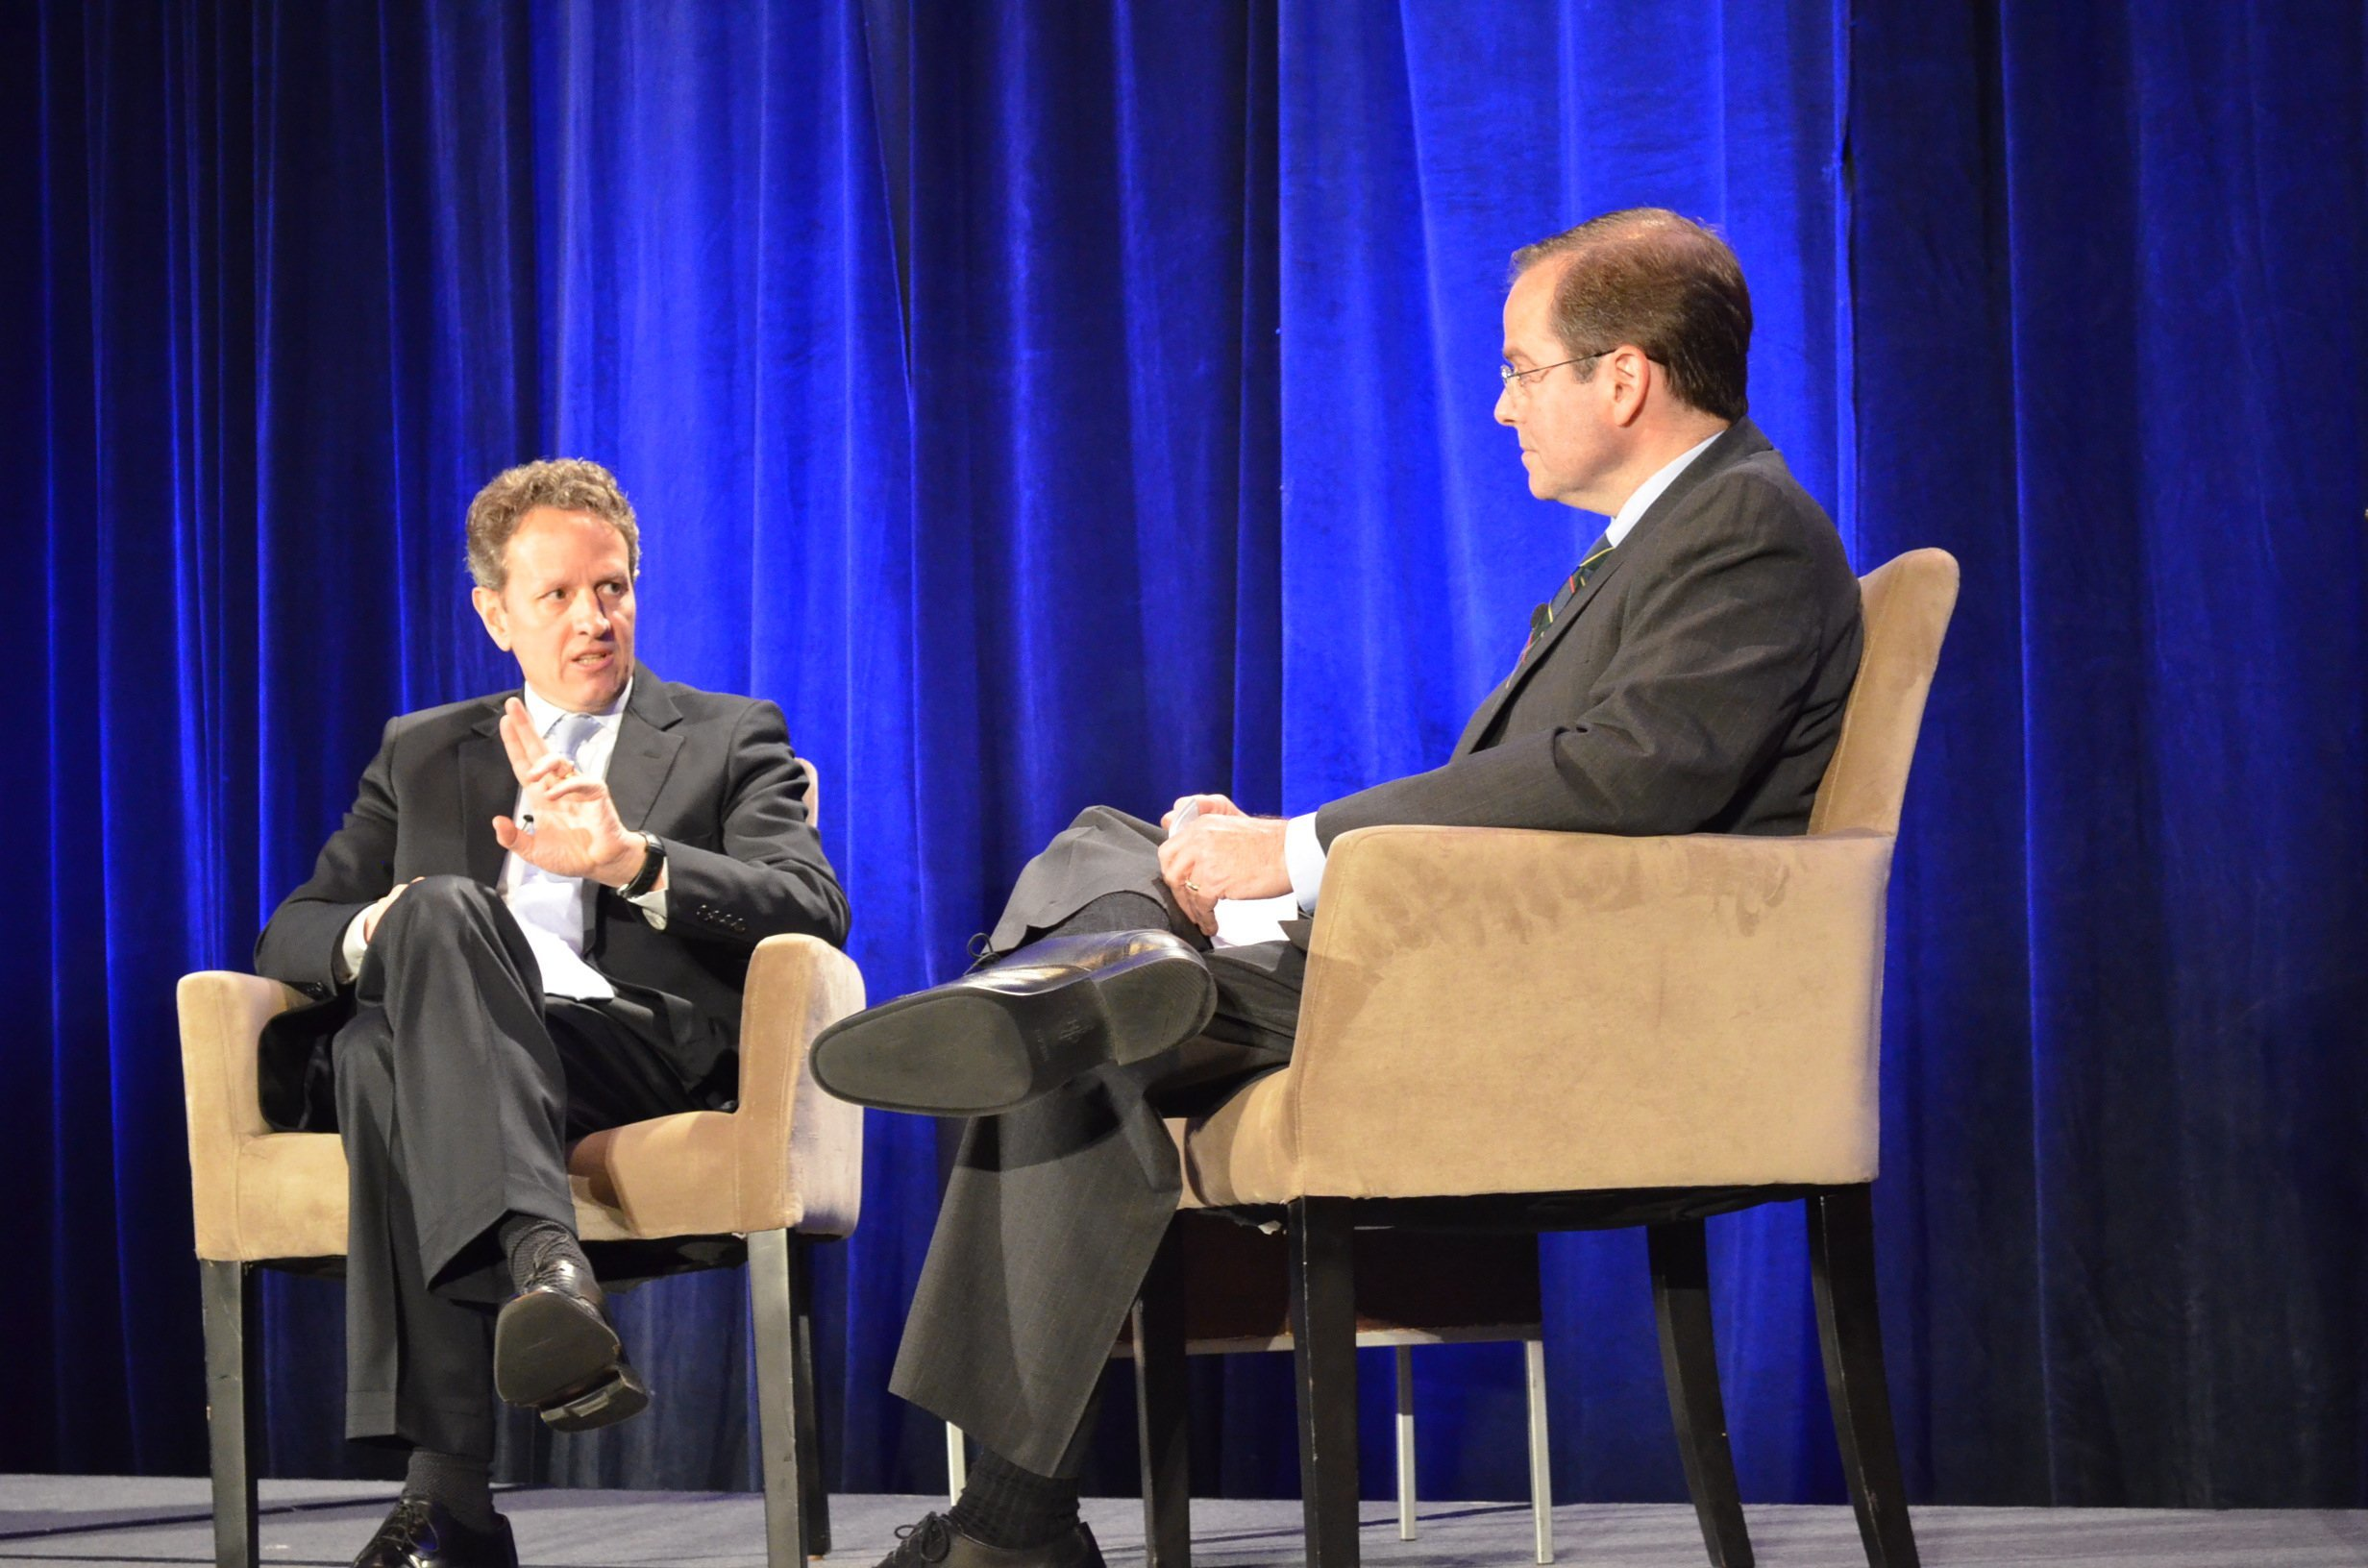 U.S. Secretary Treasurer Timothy Geithner and Maryland Public Television's Jeff Salkin